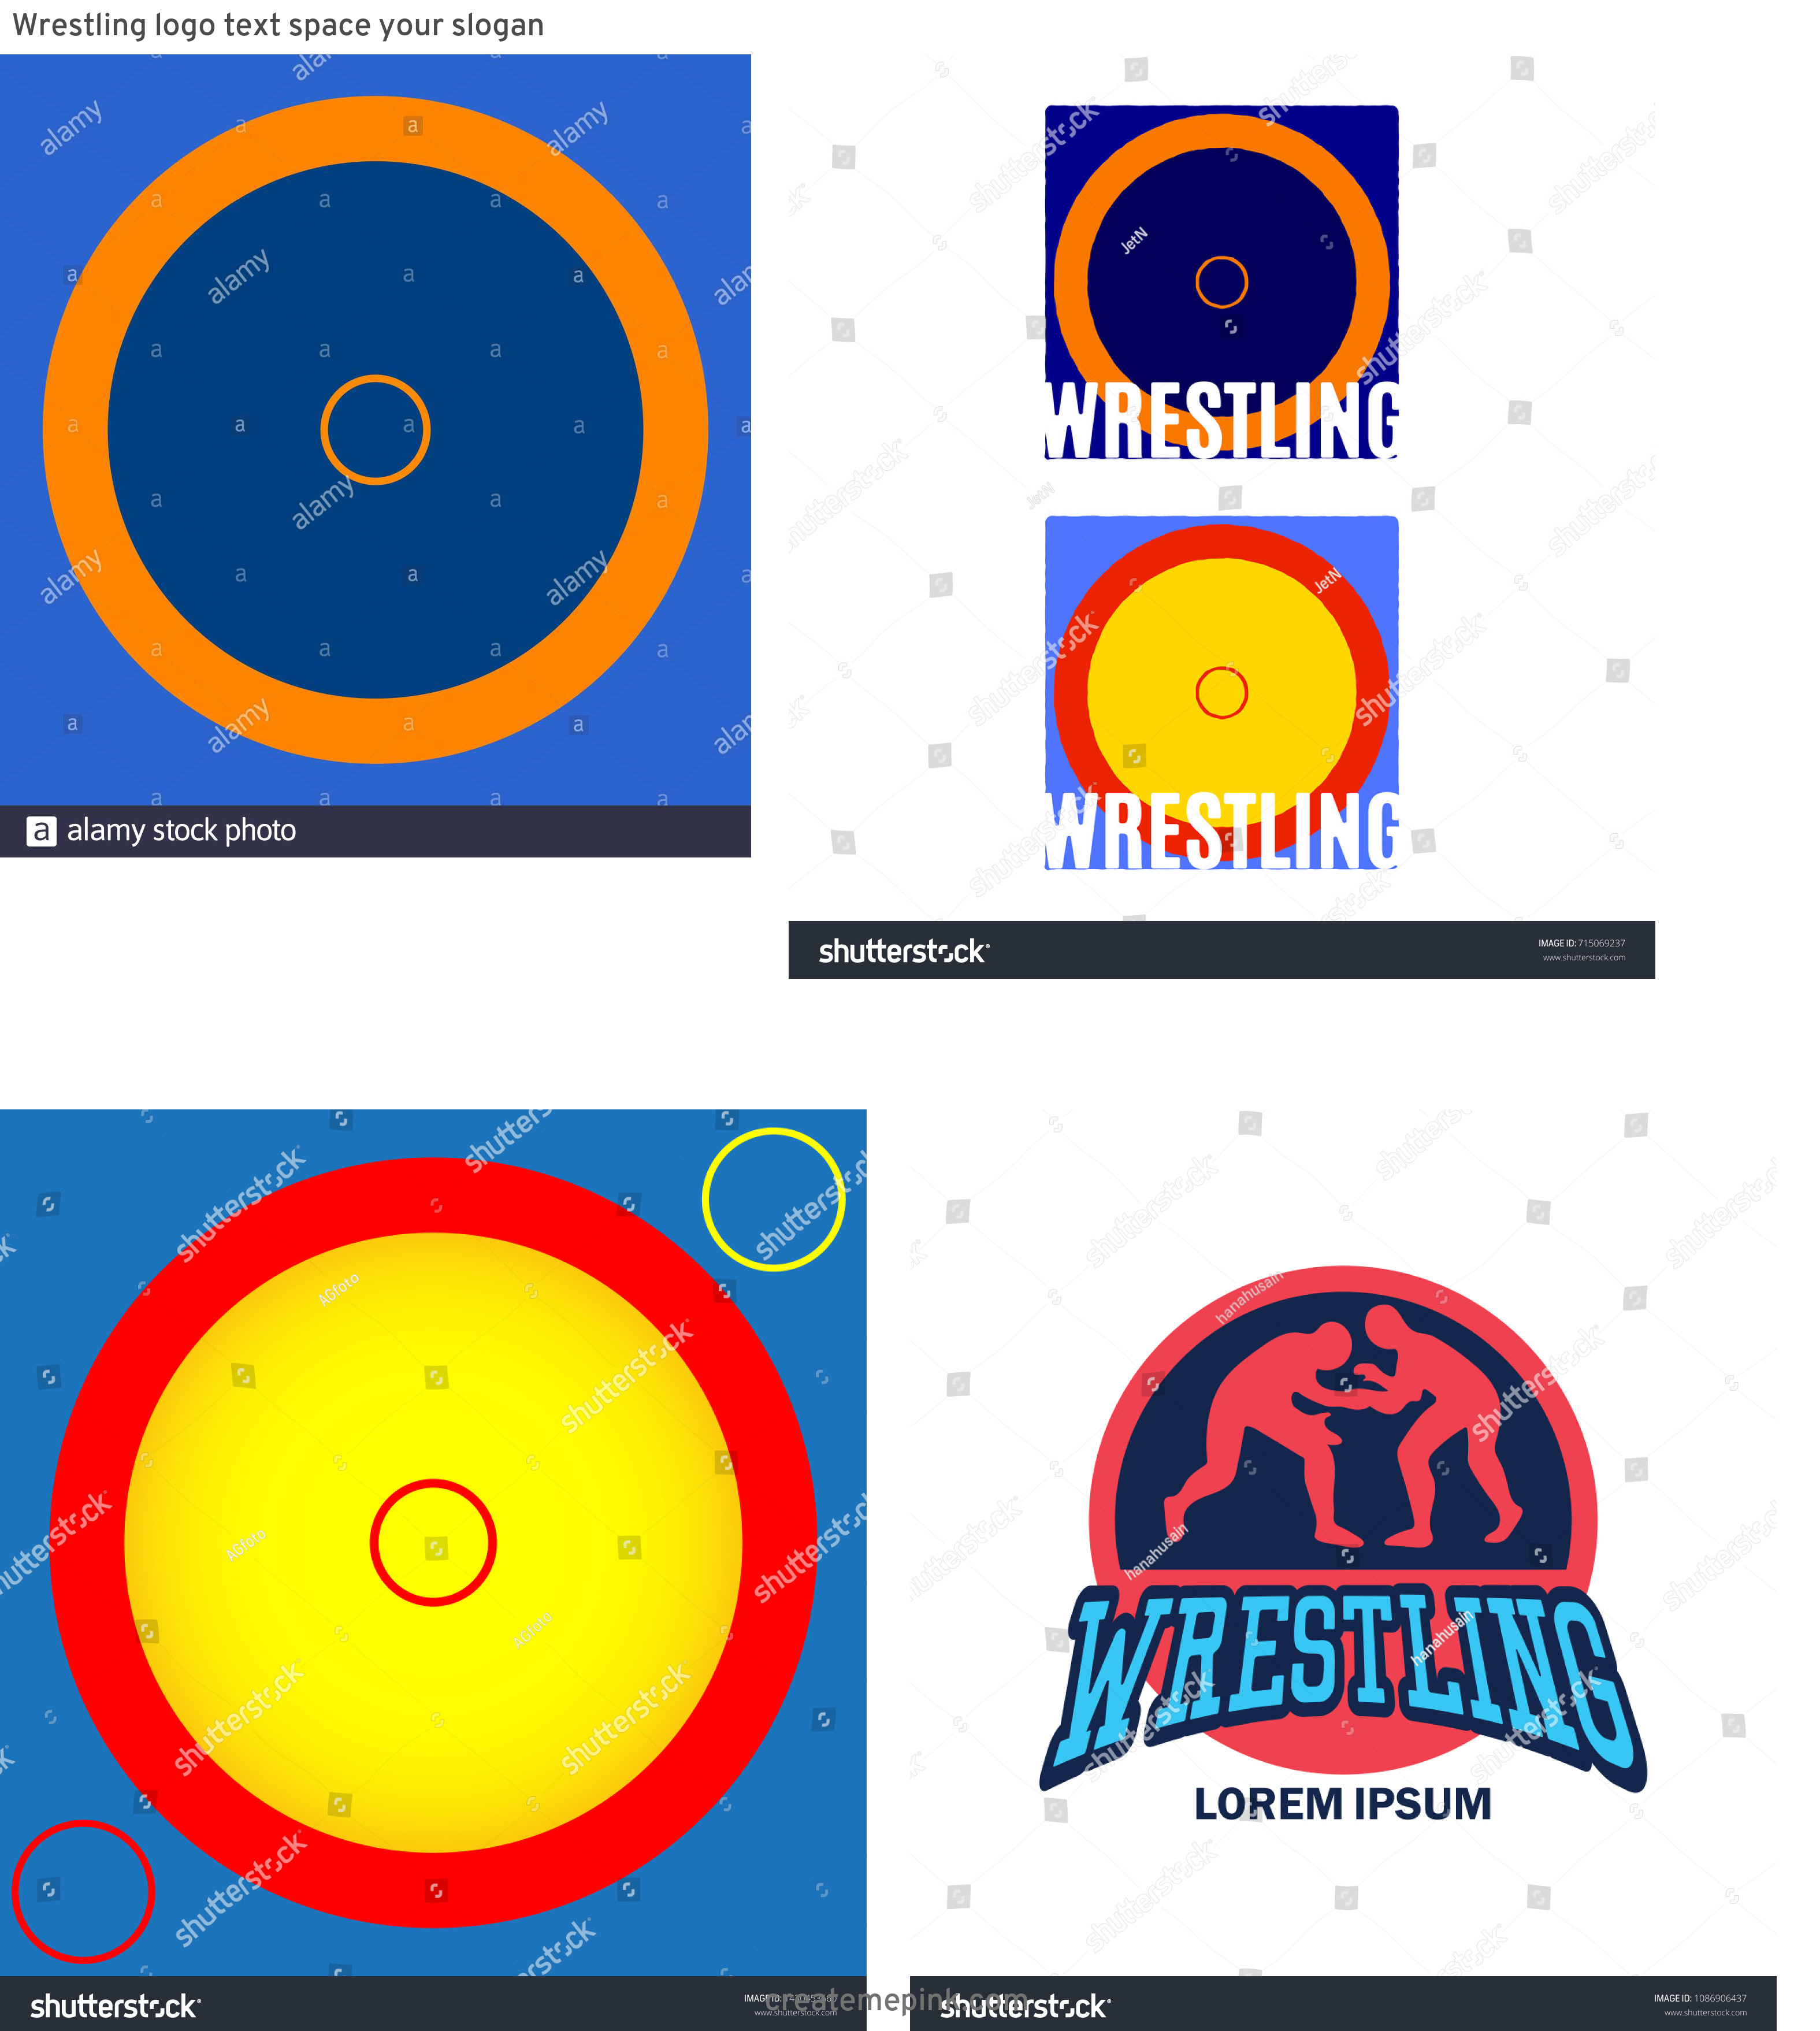 Vector Wrestling Mat: Wrestling Logo Text Space Your Slogan